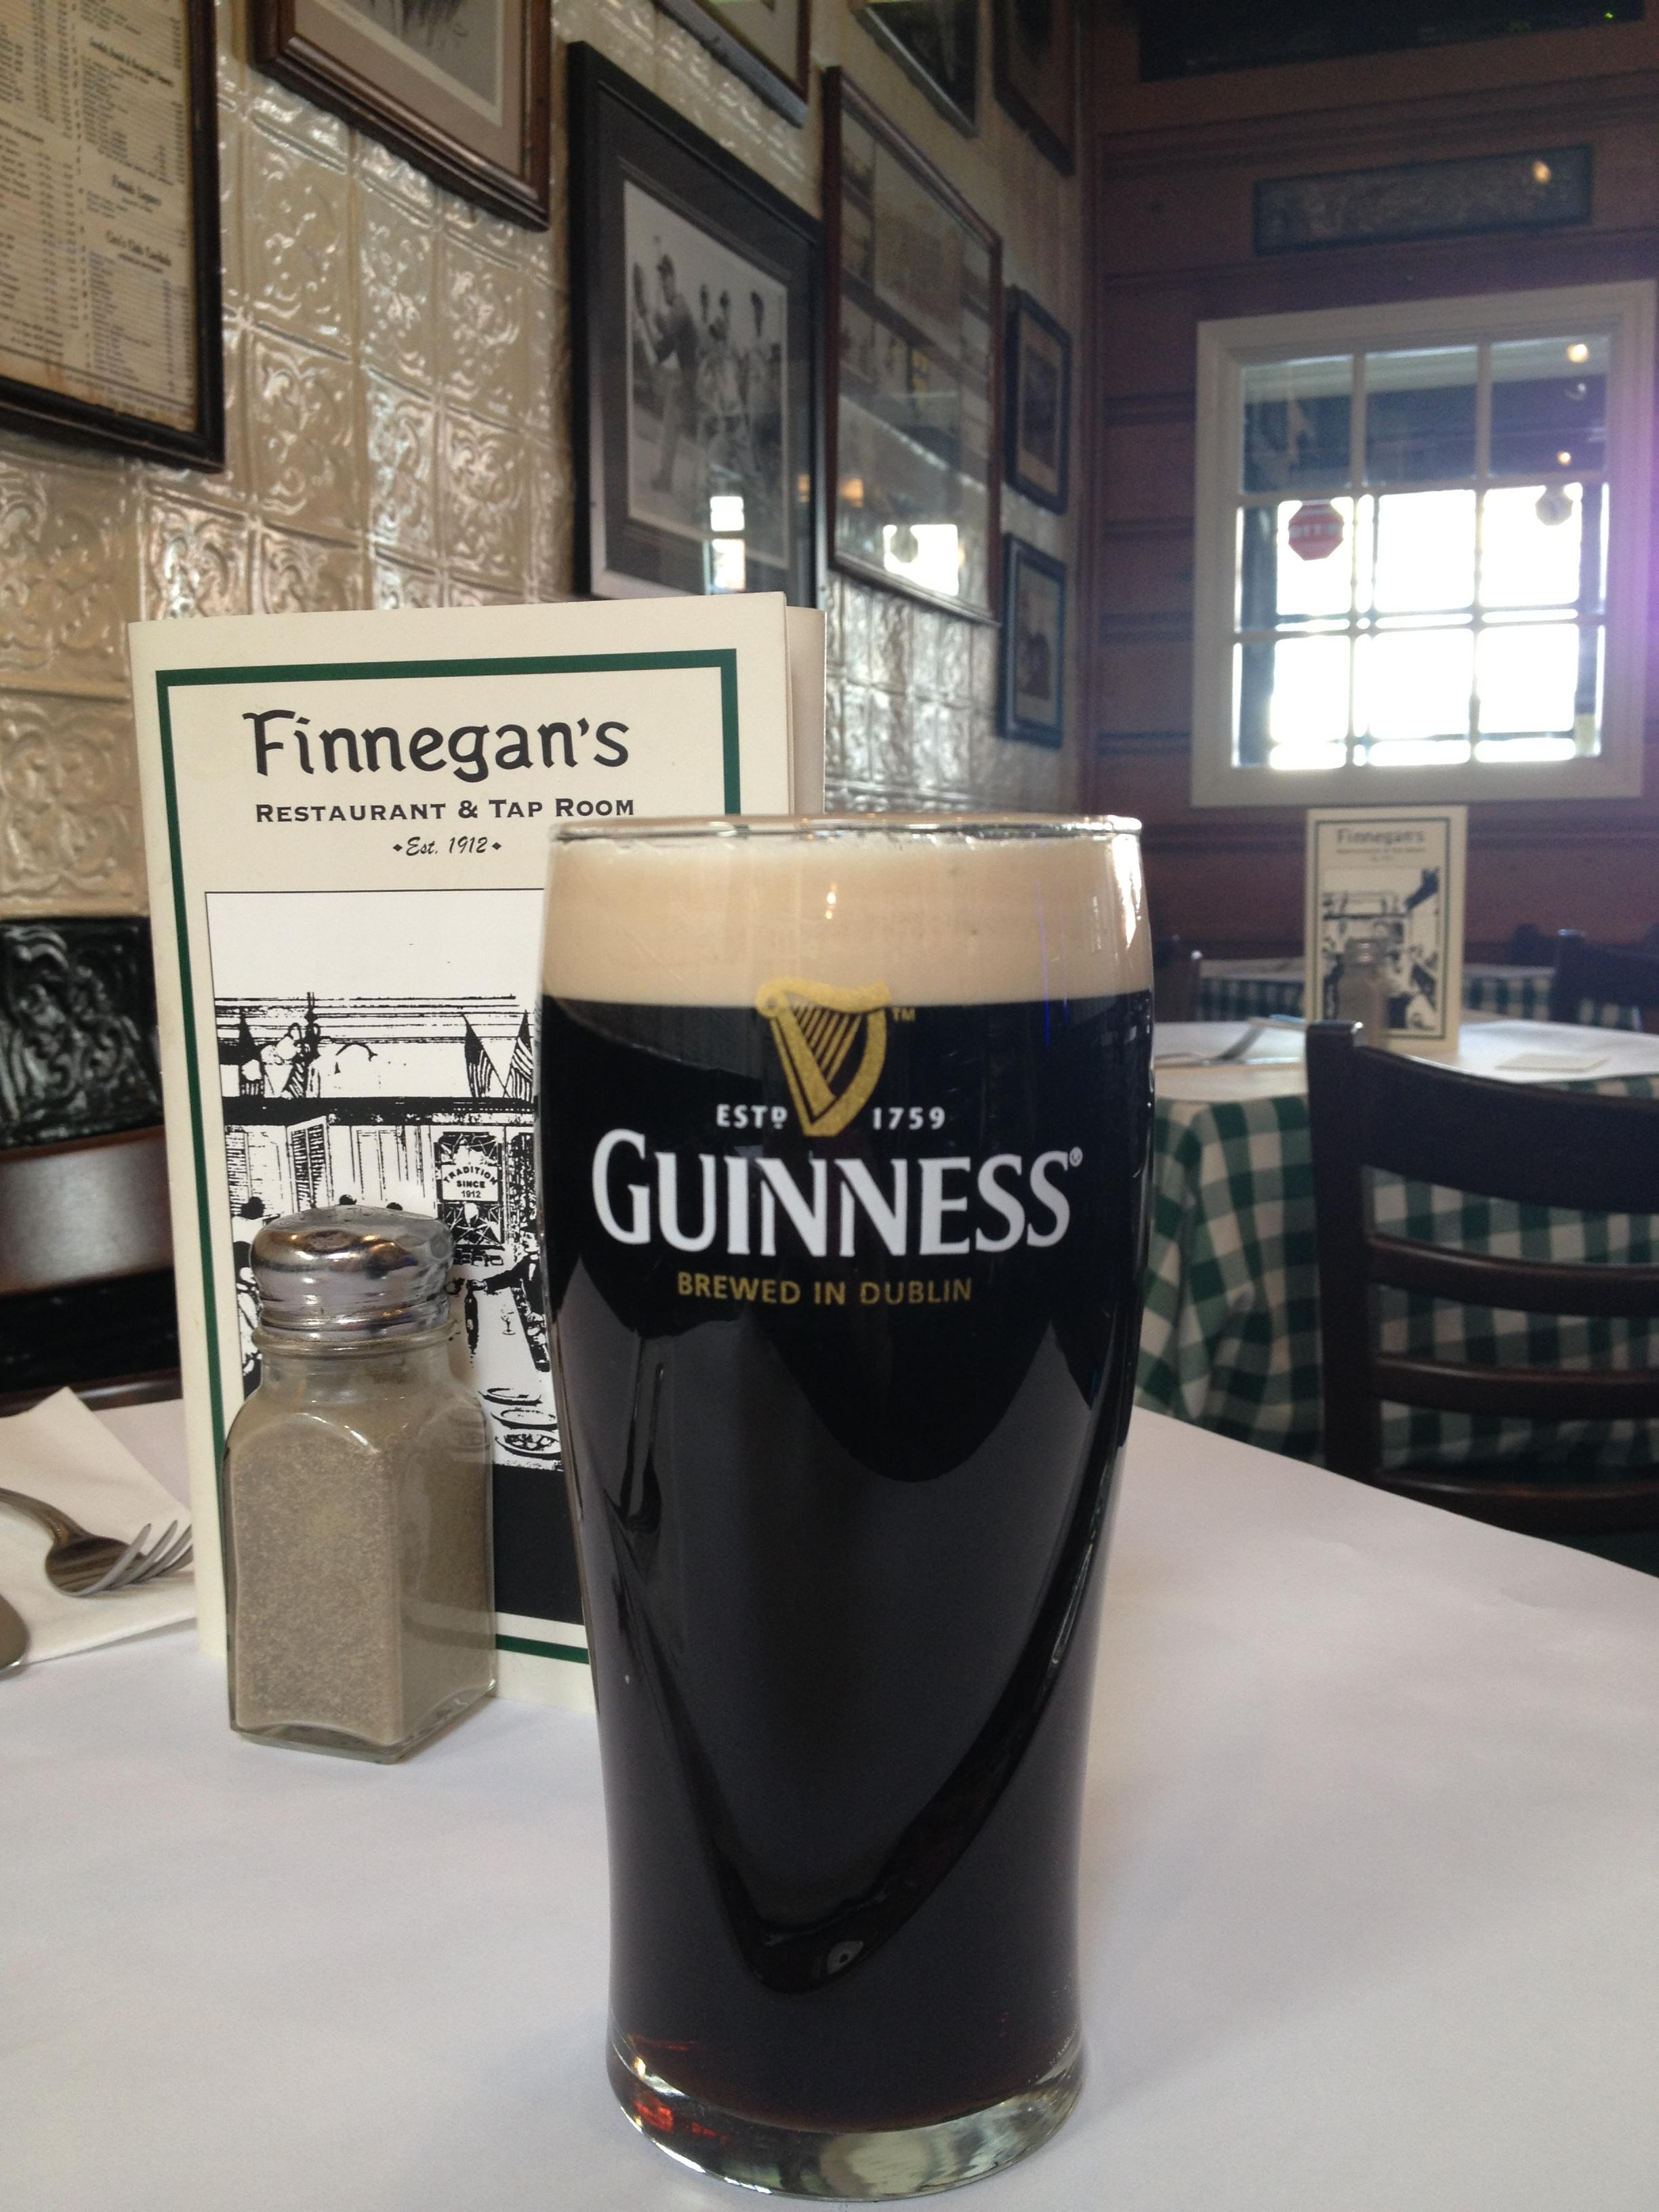 It wouldn't be St. Patrick's Day without a perfectly poured pint of Guinness image: finnegan's restaurant & tap room